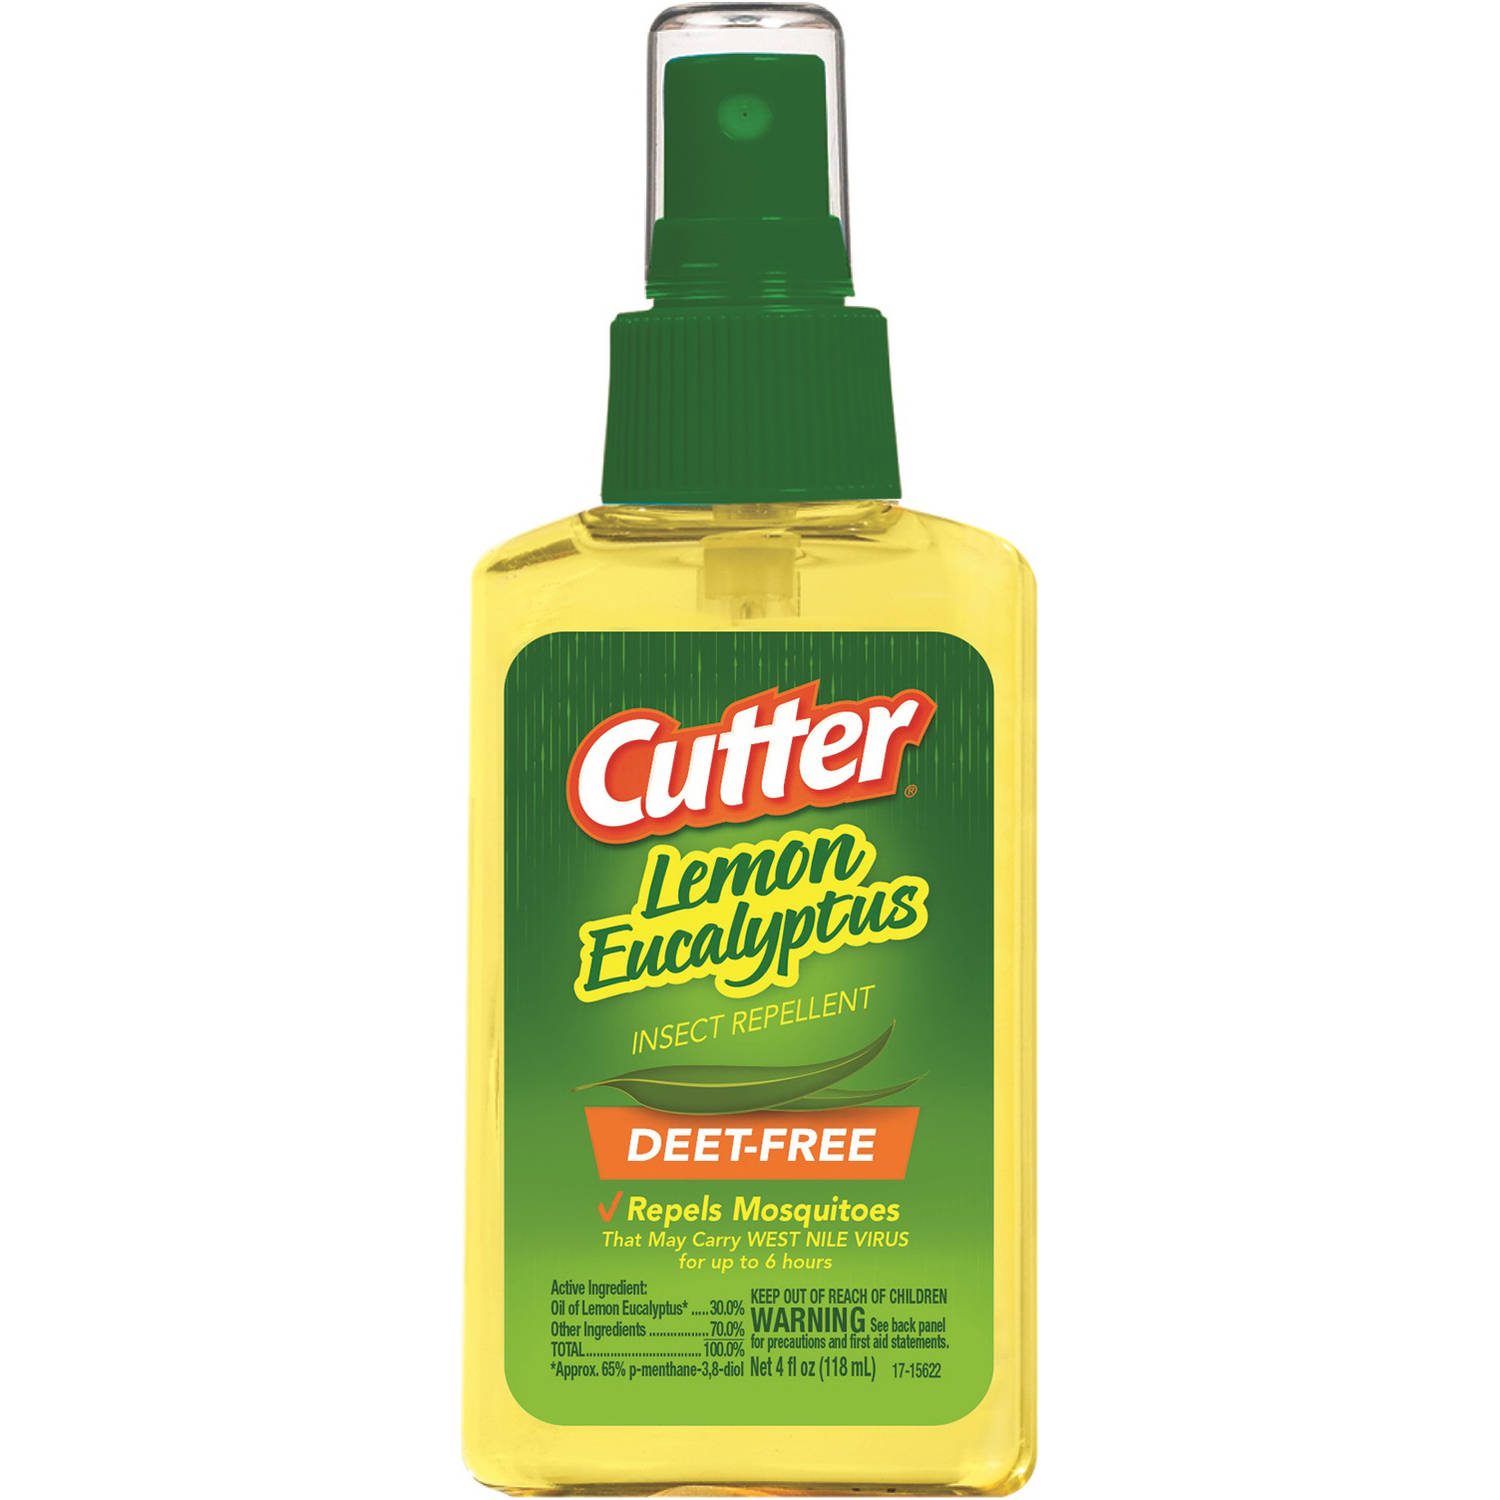 Cutter Lemon Eucalyptus Pump Spray